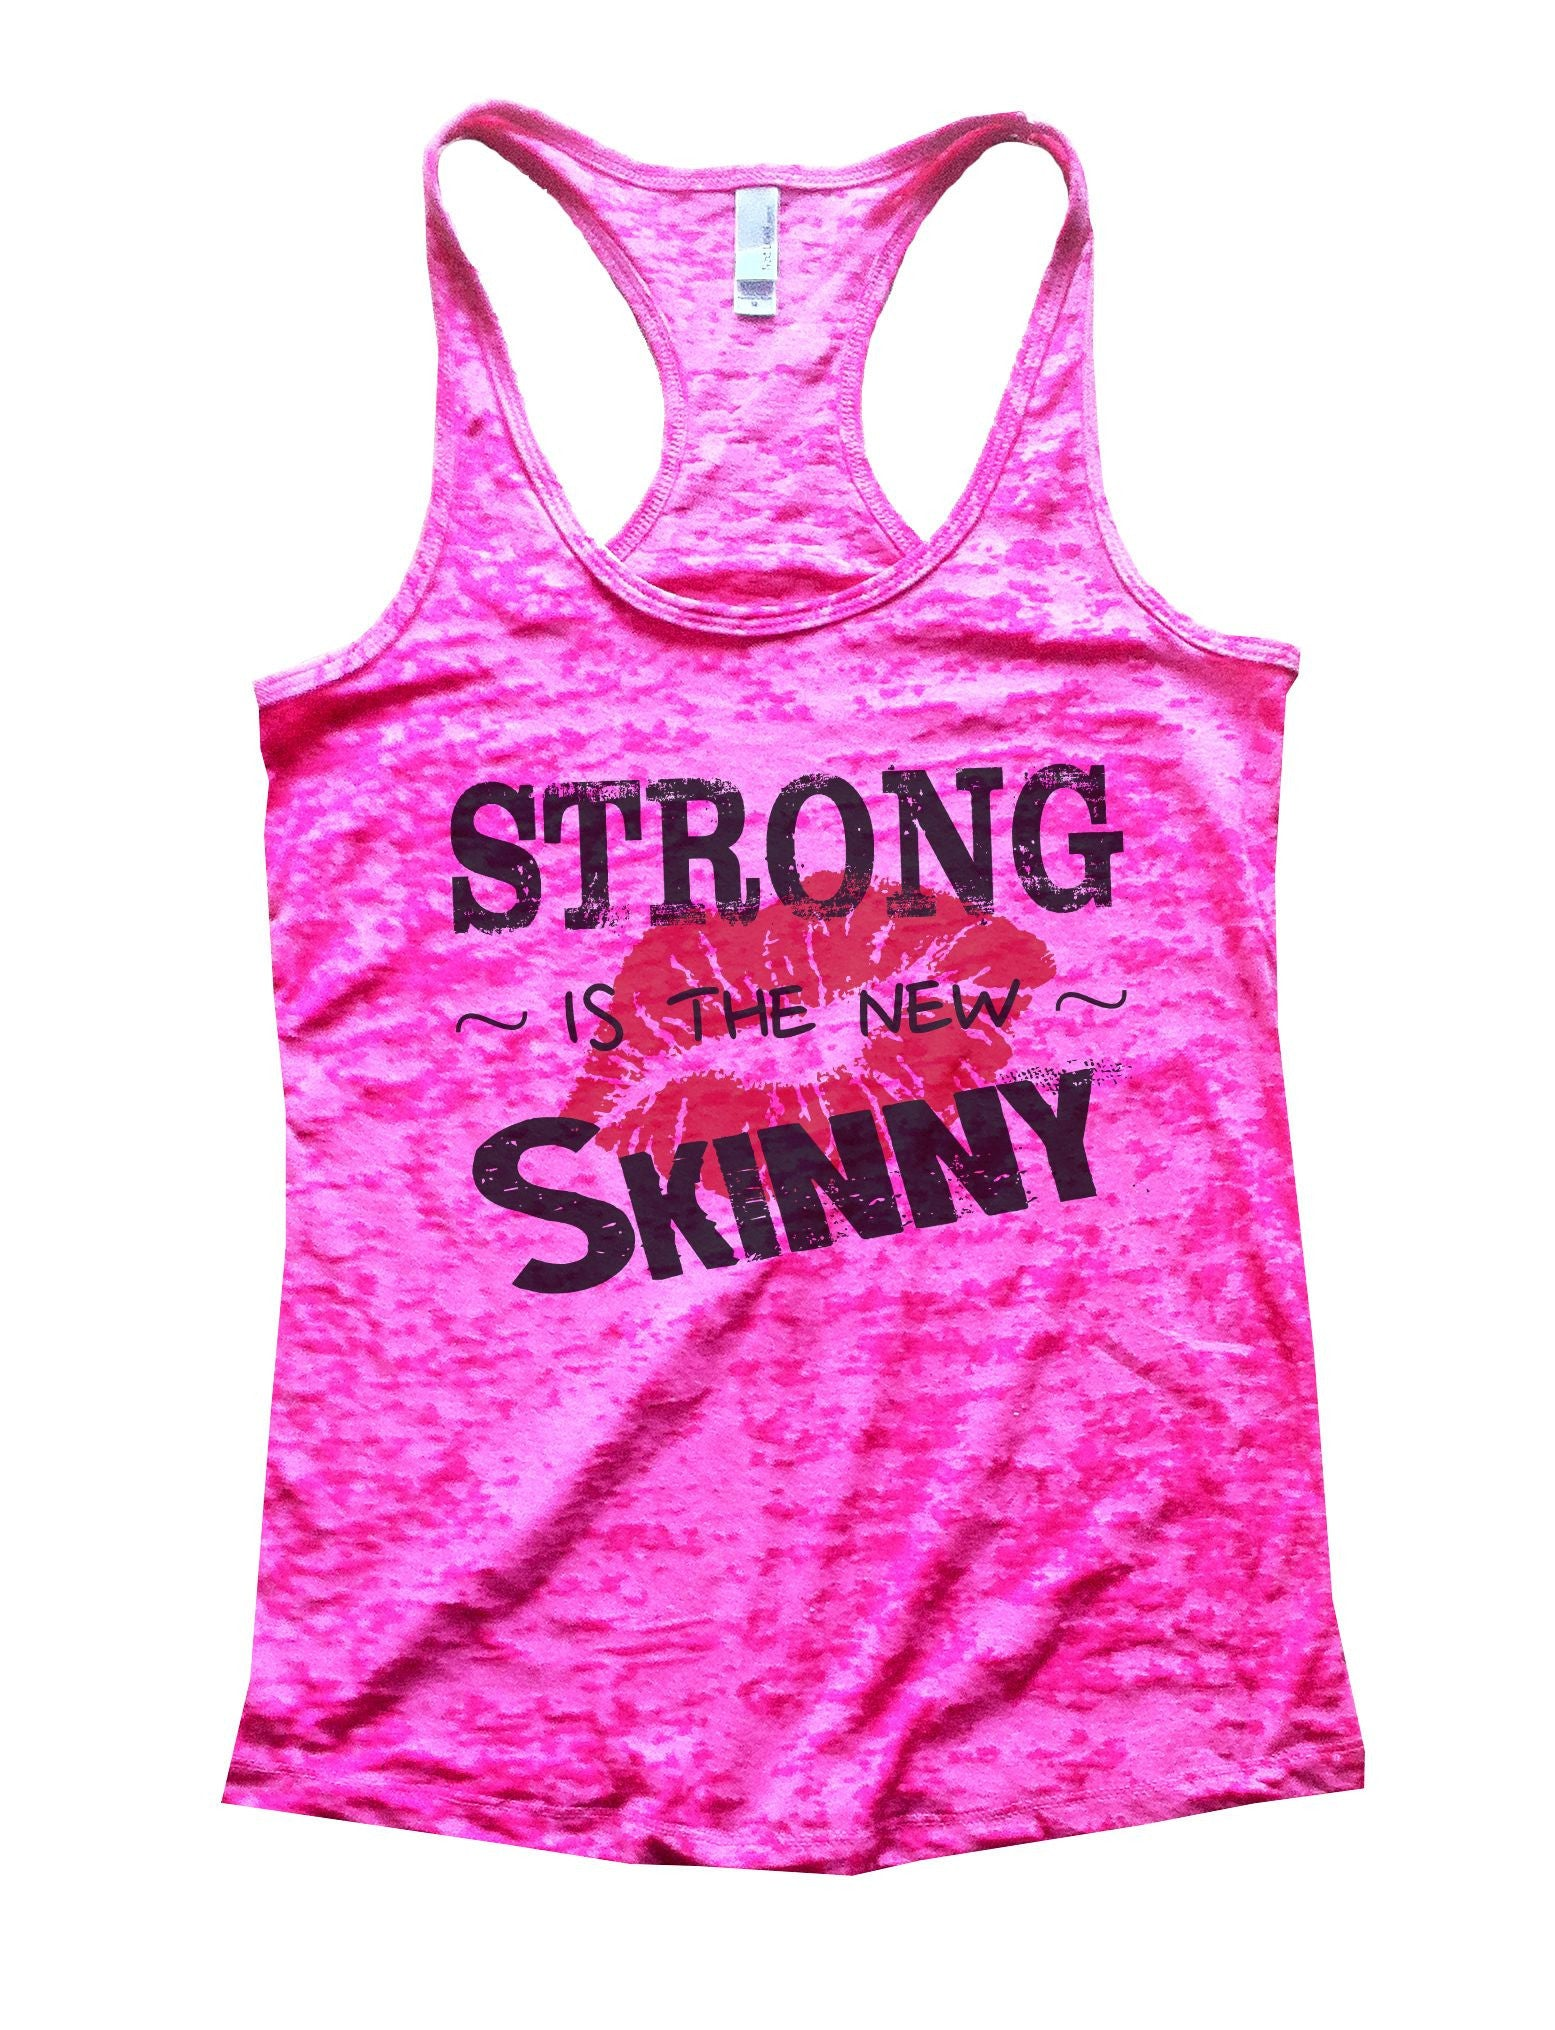 Strong Is The New Skinny Burnout Tank Top By BurnoutTankTops.com - 755 - Funny Shirts Tank Tops Burnouts and Triblends  - 3